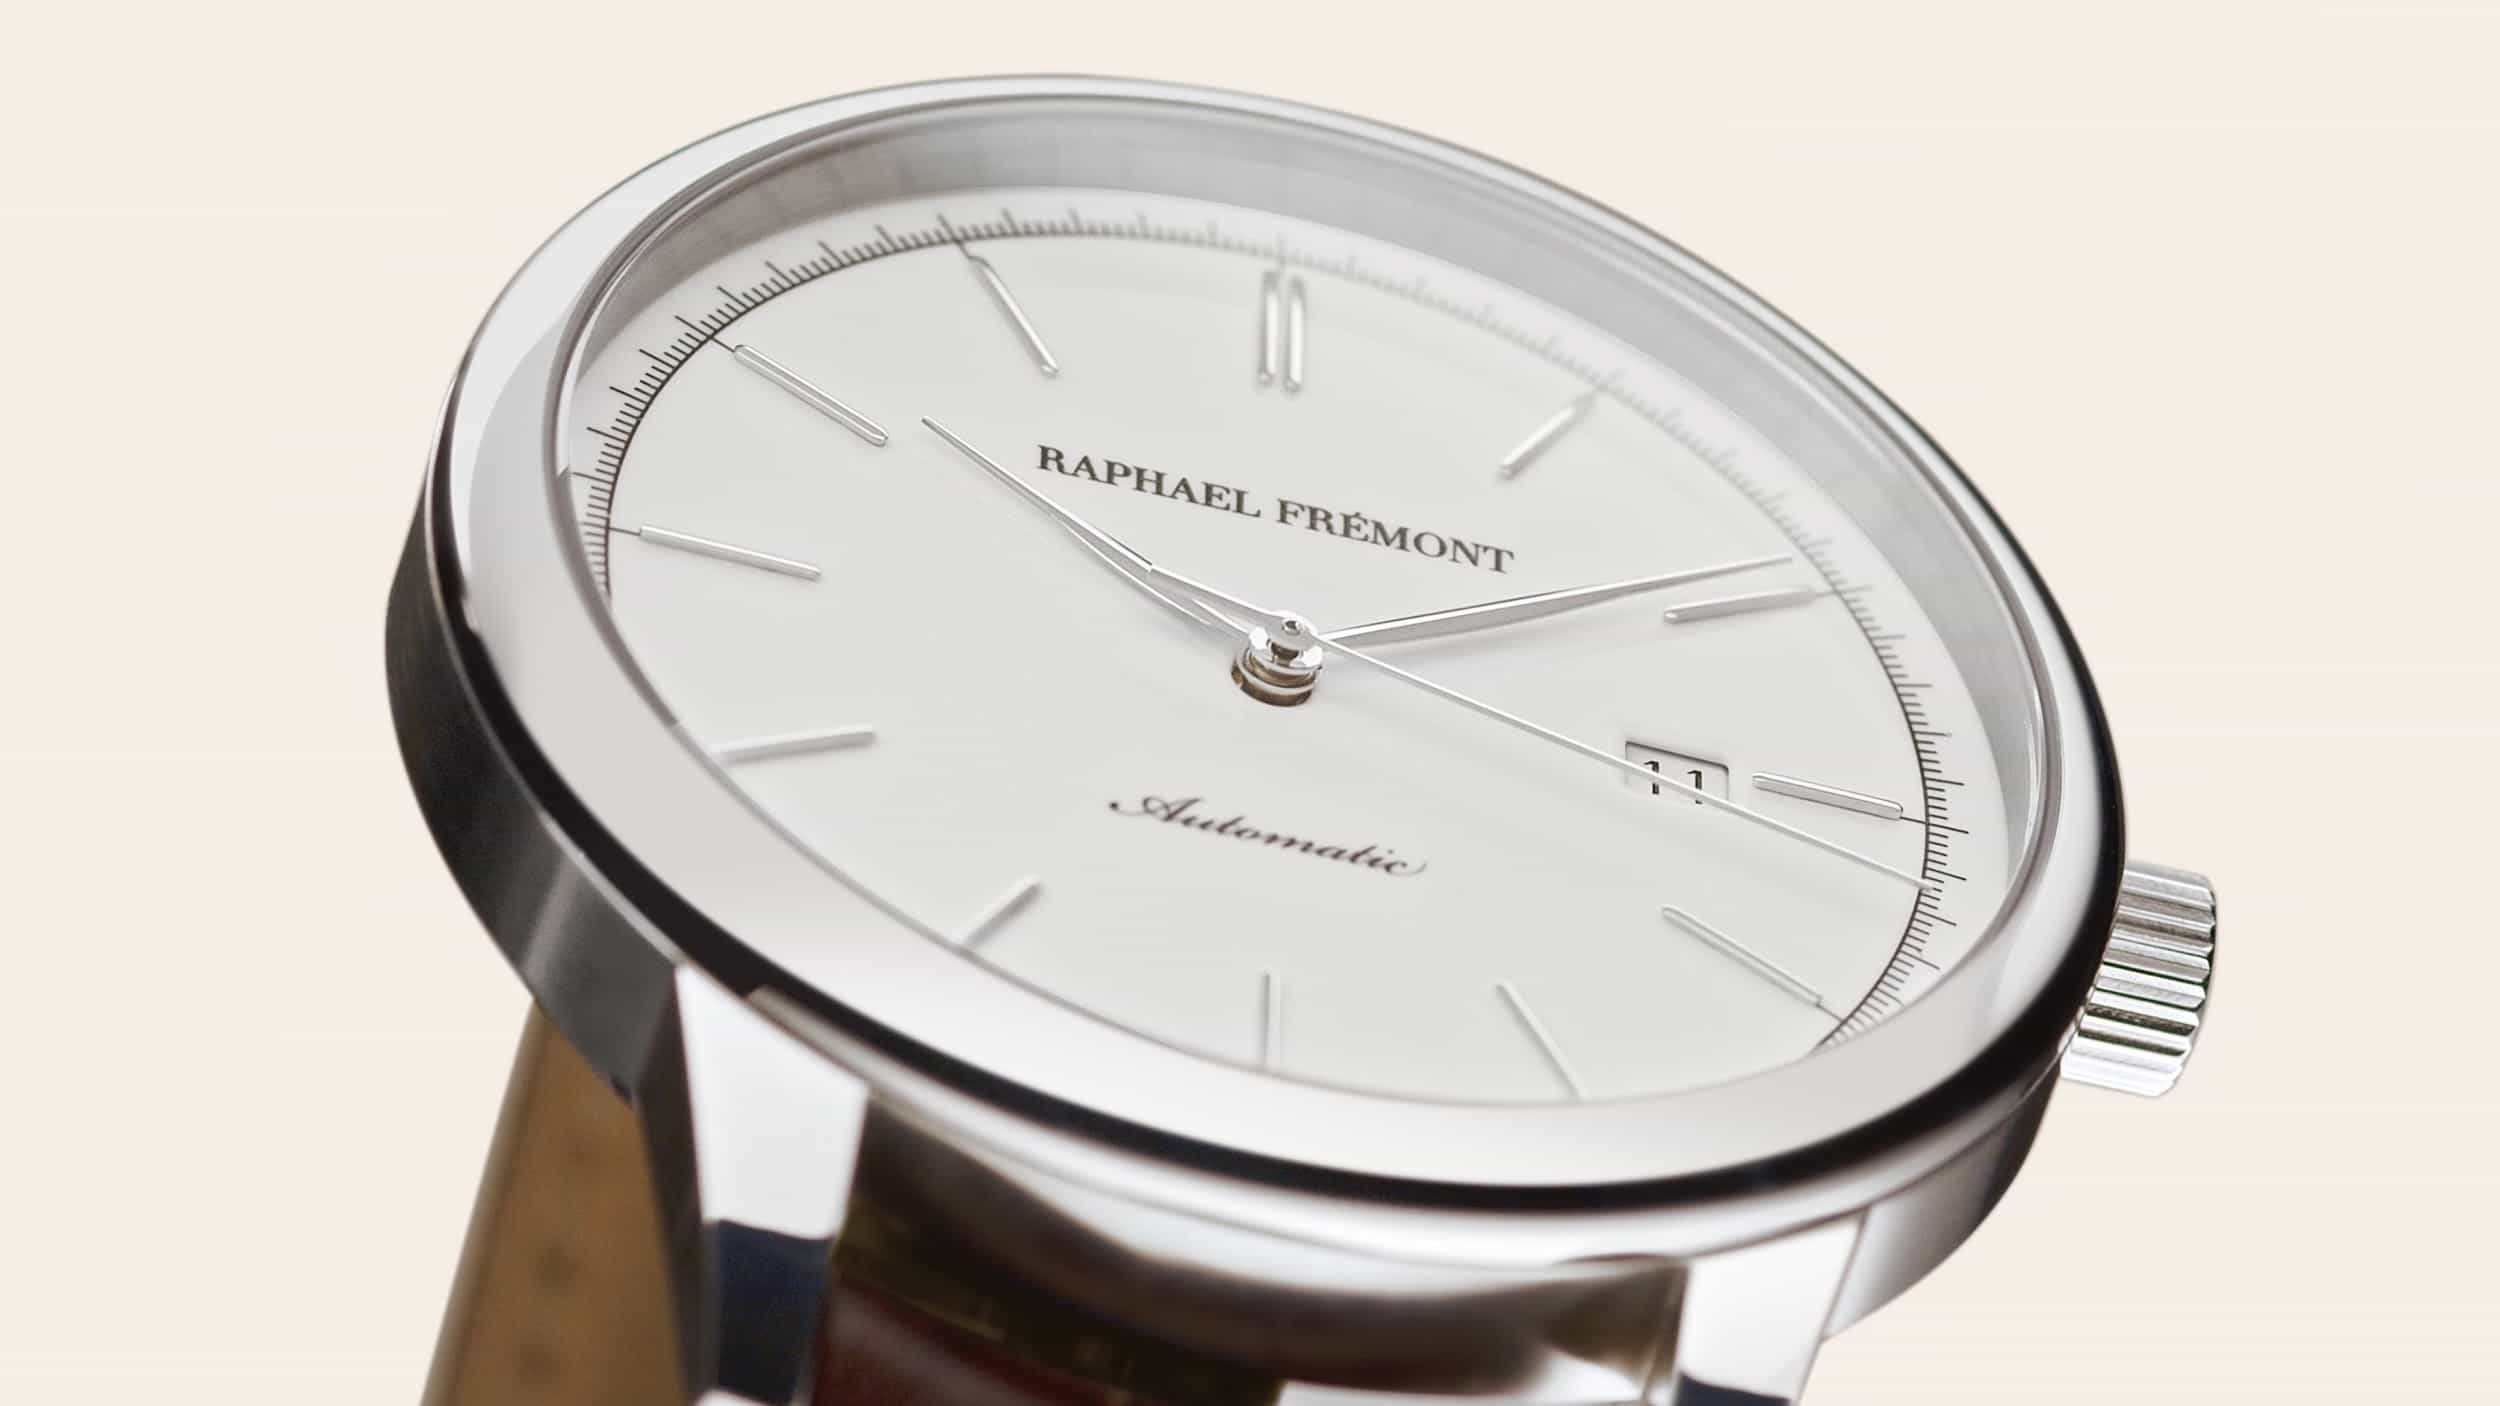 Raphael Frémont - Exclusive: First timepiece by new Swiss-Made brand Raphael Frémont